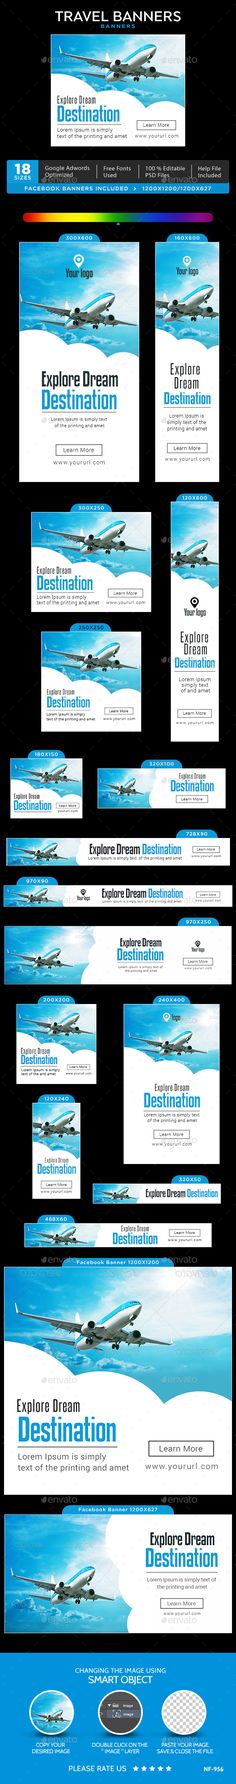 Travel Web Banners Template PSD #ad #promotion #design Download: http://graphicriver.net/item/travel-banners/14276098?ref=ksioks